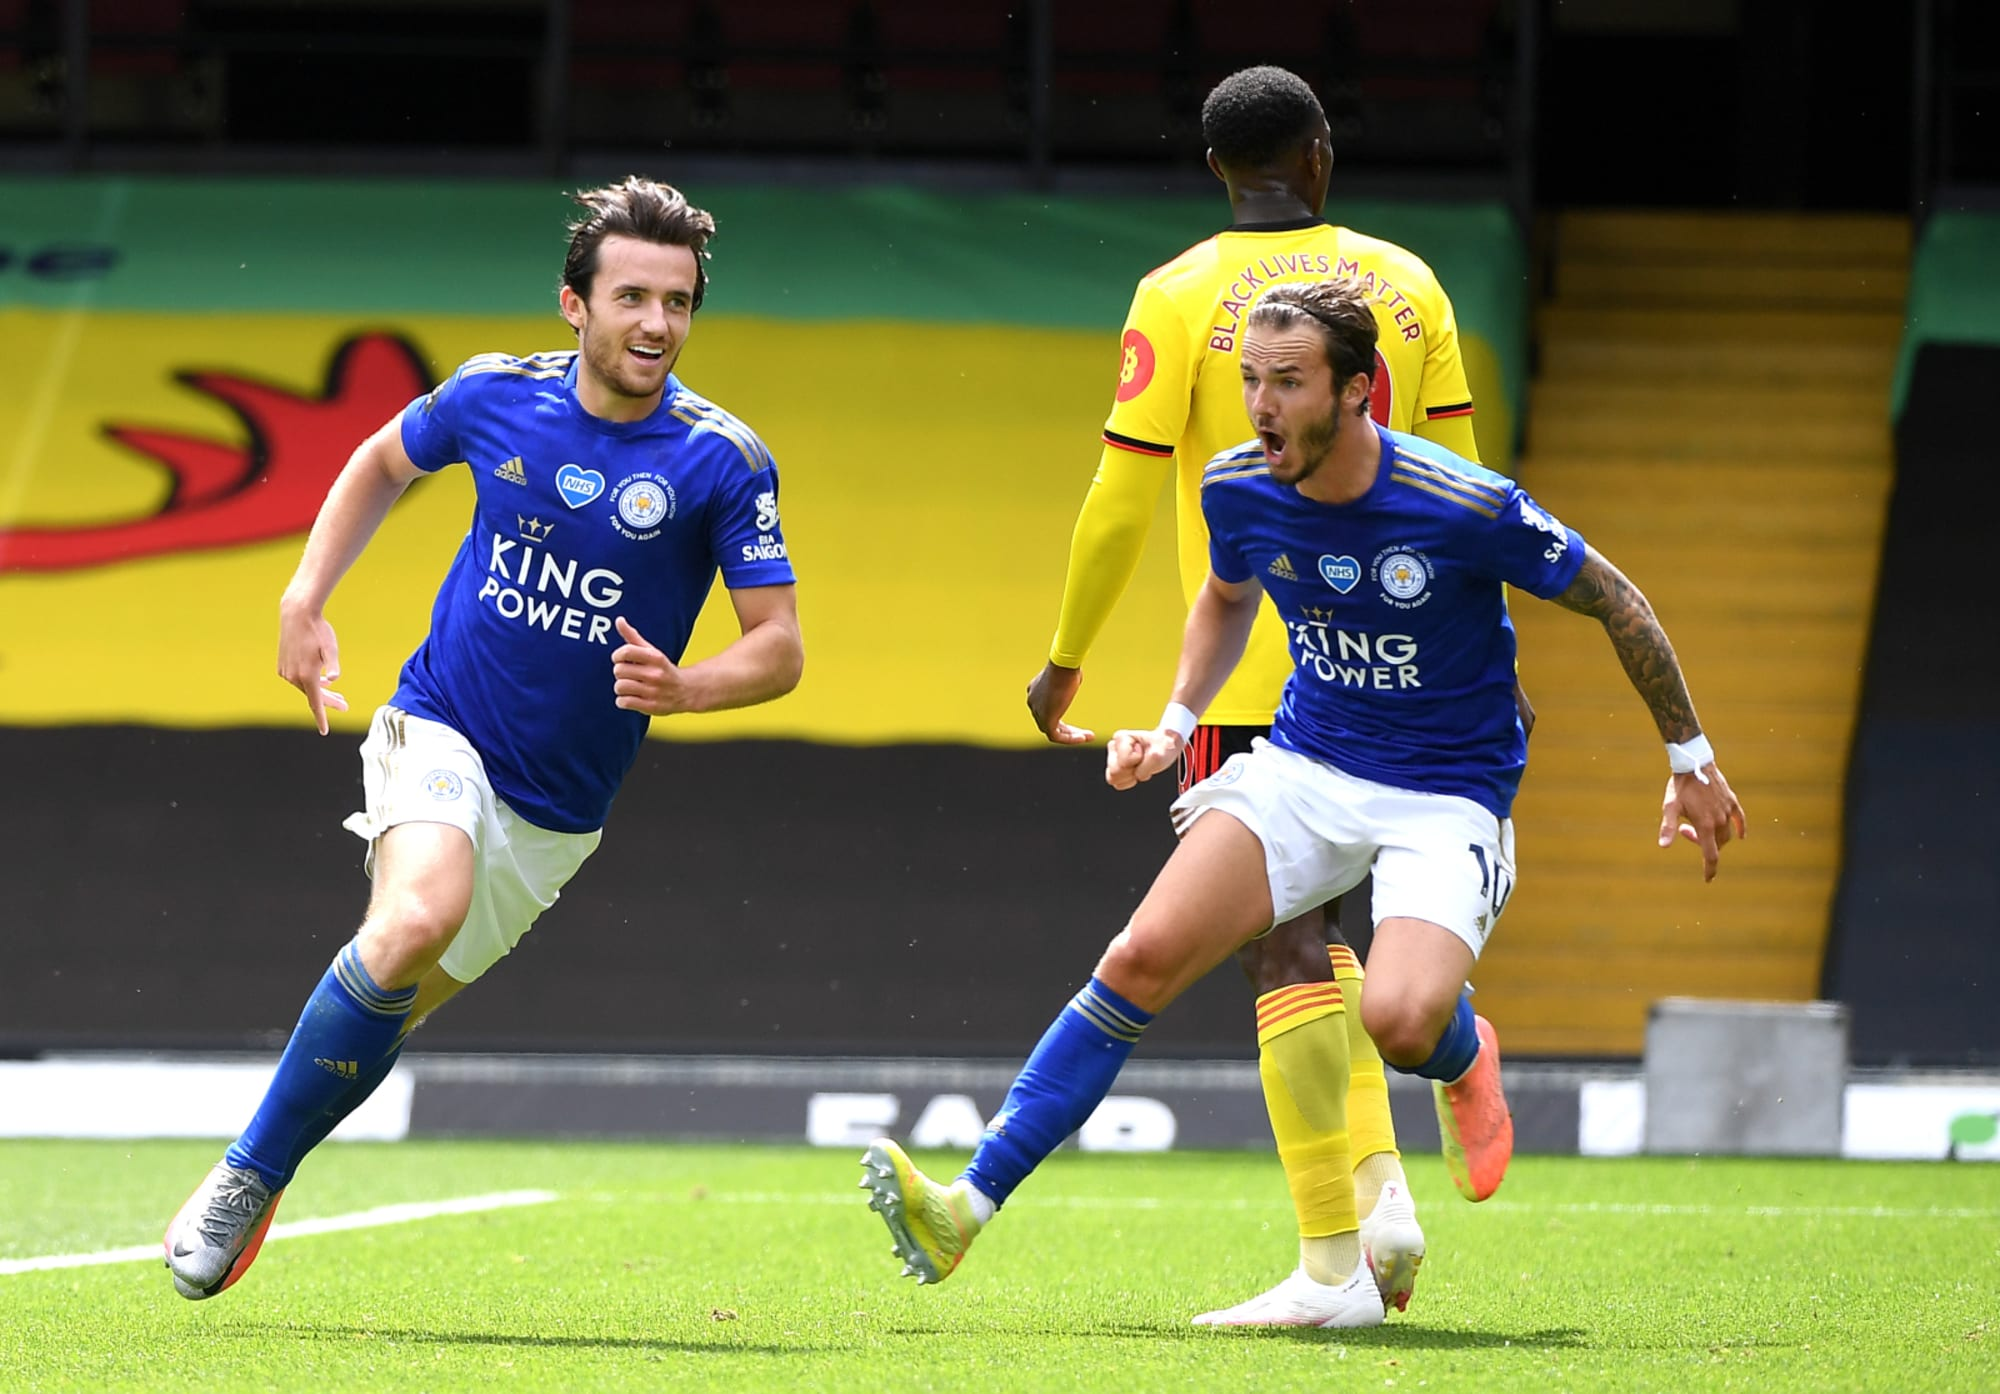 Leicester injury news on Ben Chilwell and James Maddison